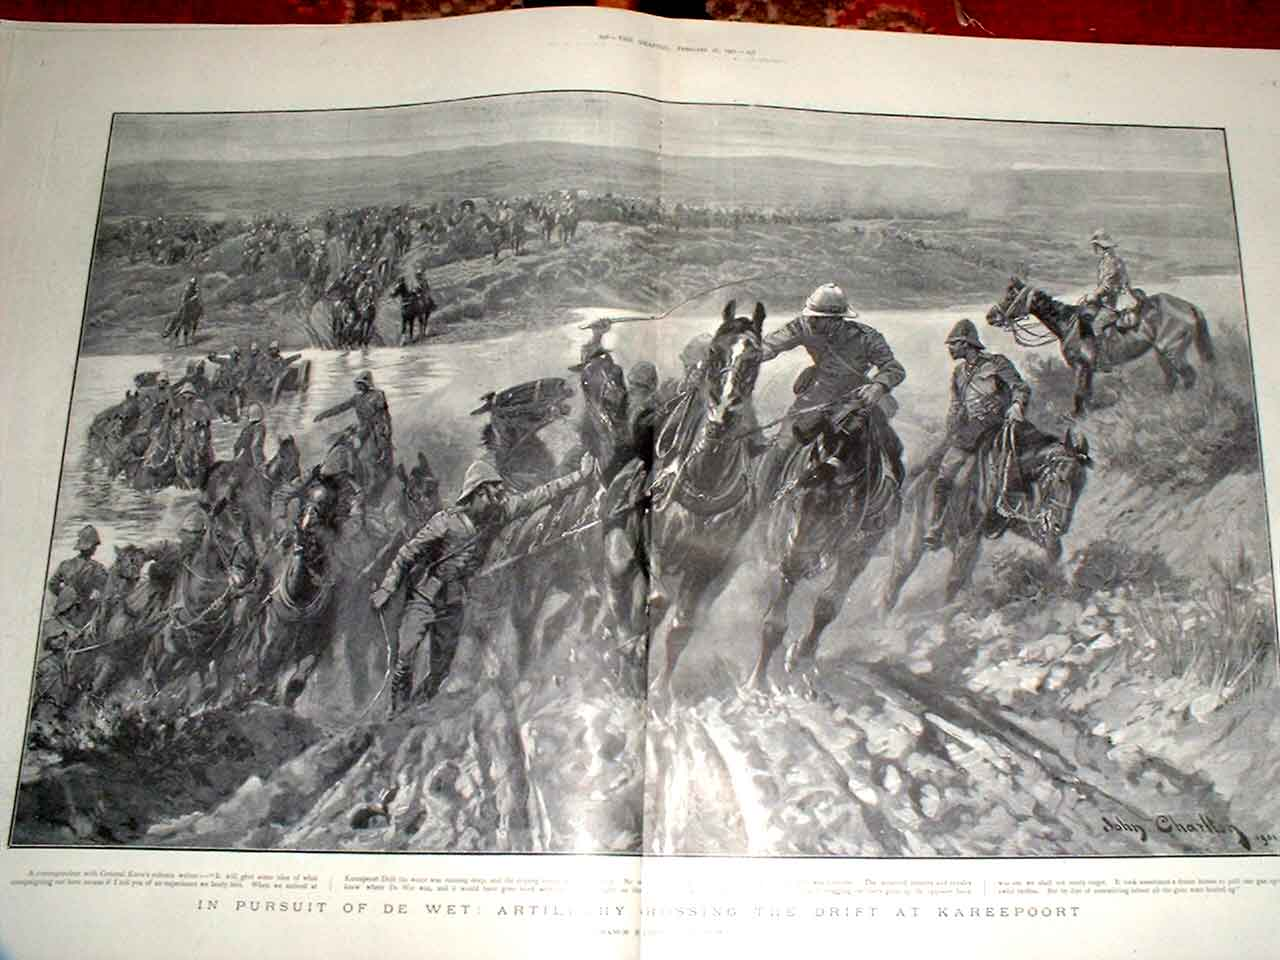 Print After De Wet Crossing Drift At Kareepoort 1901 Boer War 55Tbbb0 Old Original